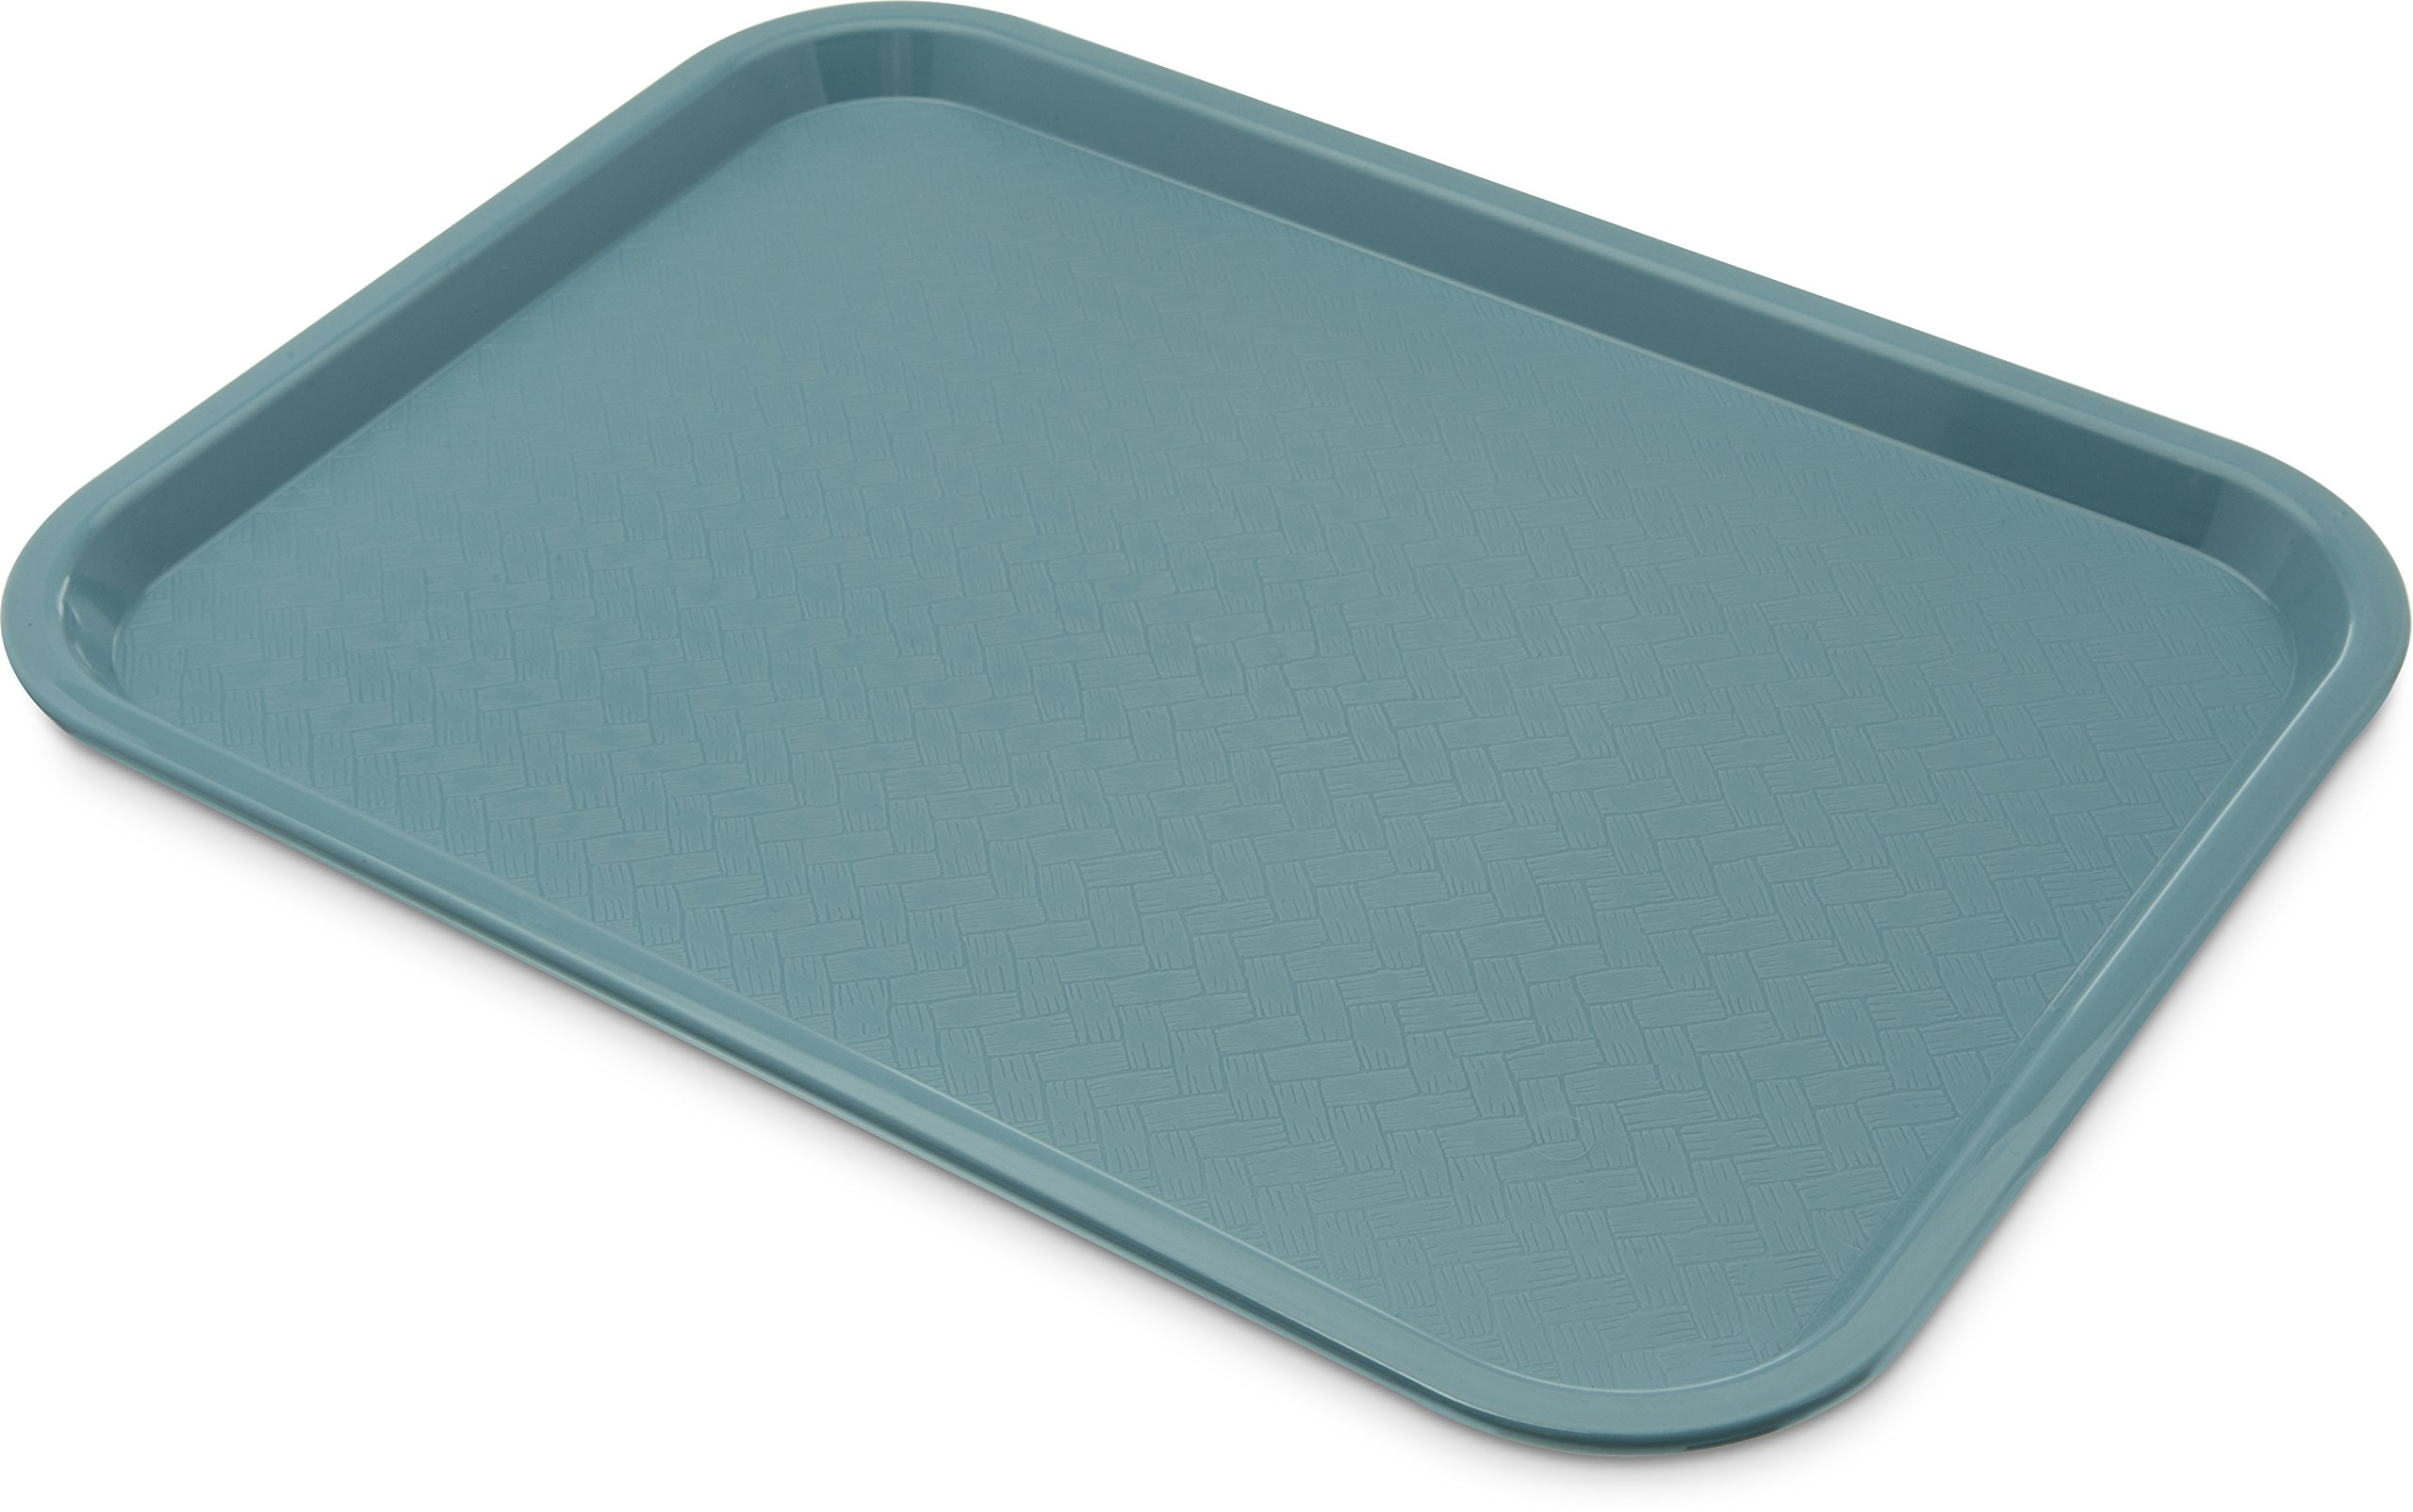 Carlisle CT121659 Café Standard Cafeteria / Fast Food Tray, 12'' x 16'', Slate Blue (Pack of 24)